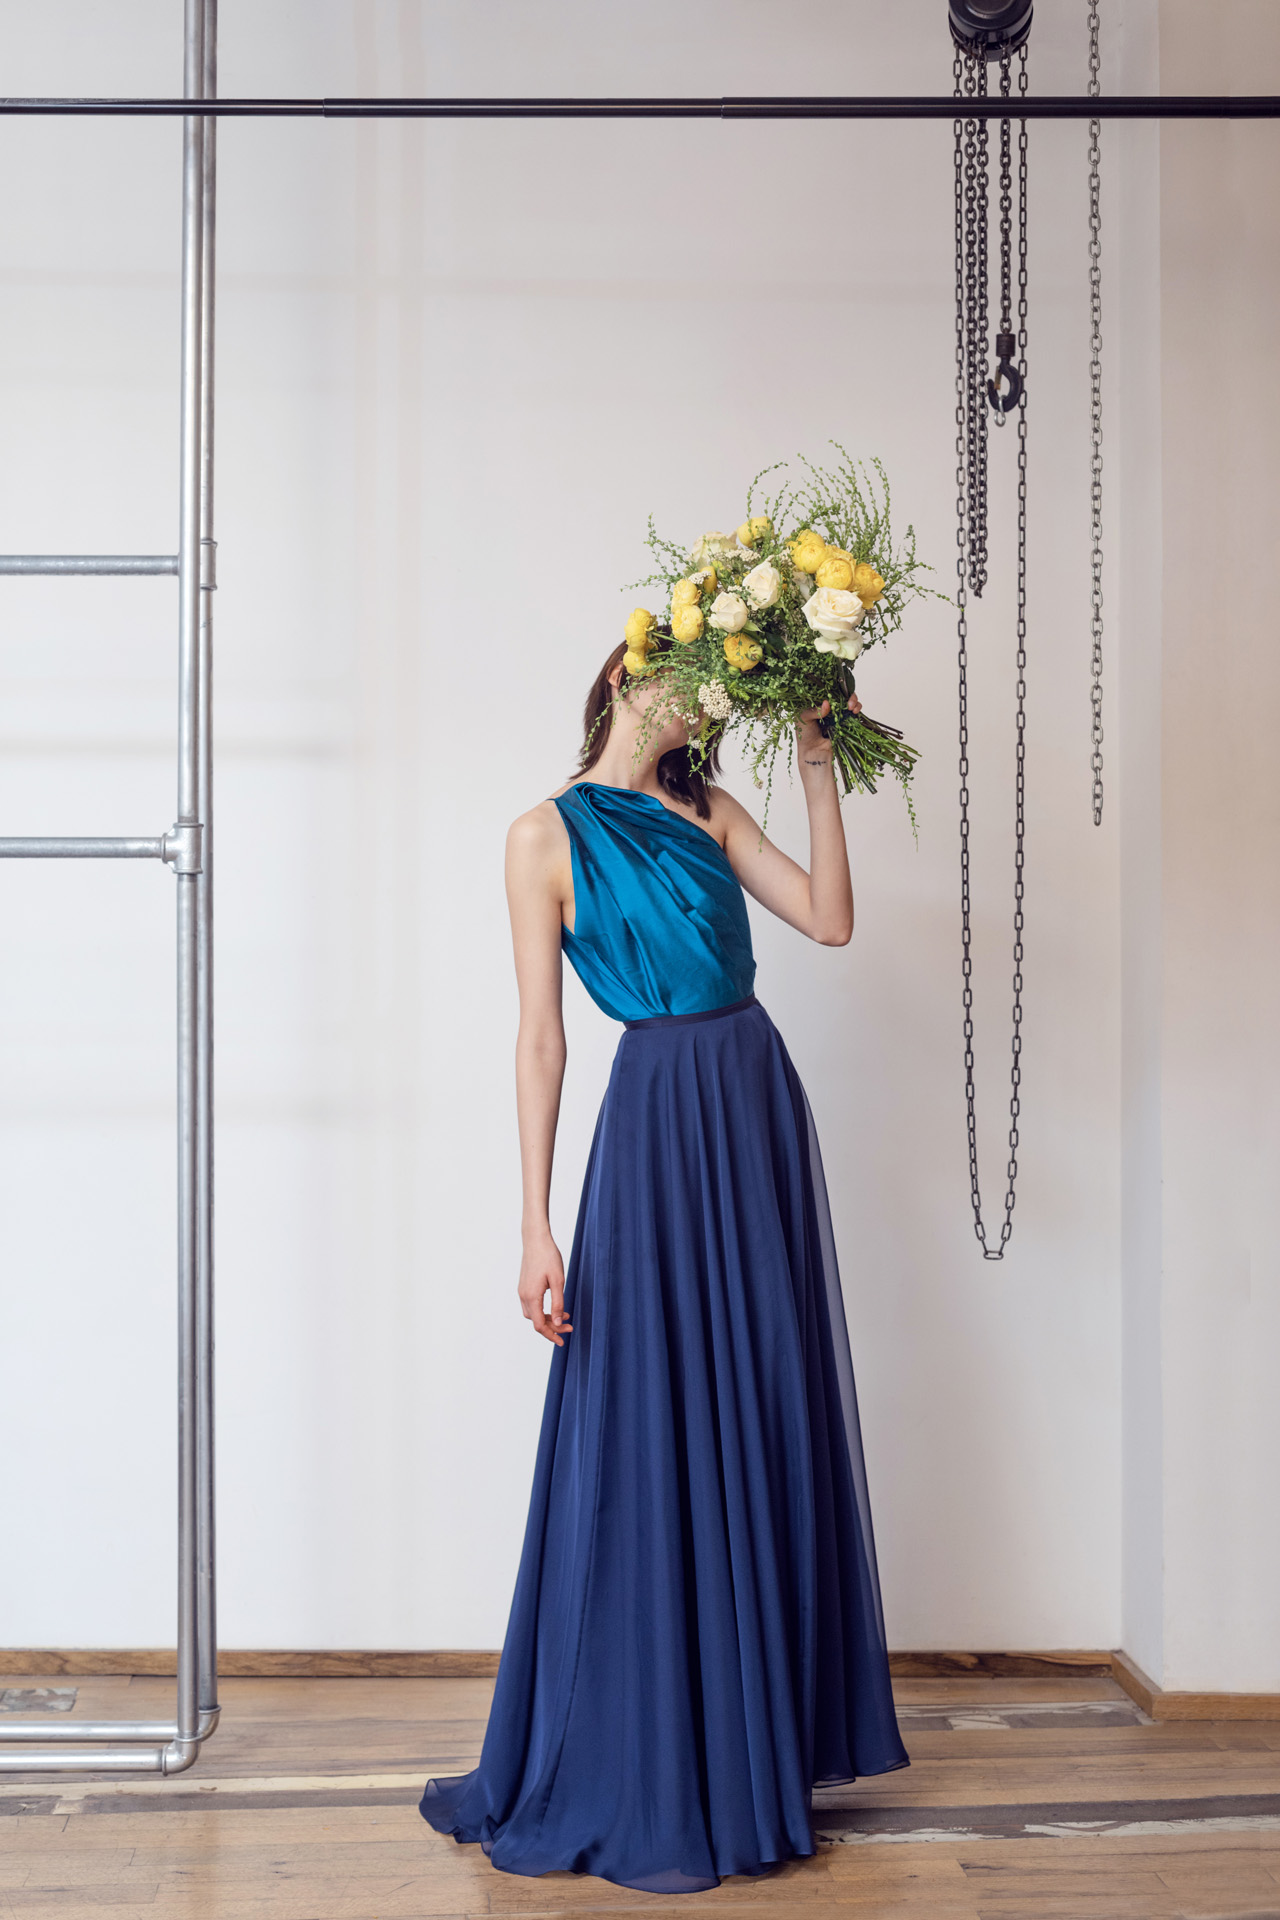 Lara Khoury | LK Stripped | Capsule 1-2019 | 15- Mediterranean Blue Taffeta Molded Top and Navy Blue Muslin Drape Skirt 1.jpg